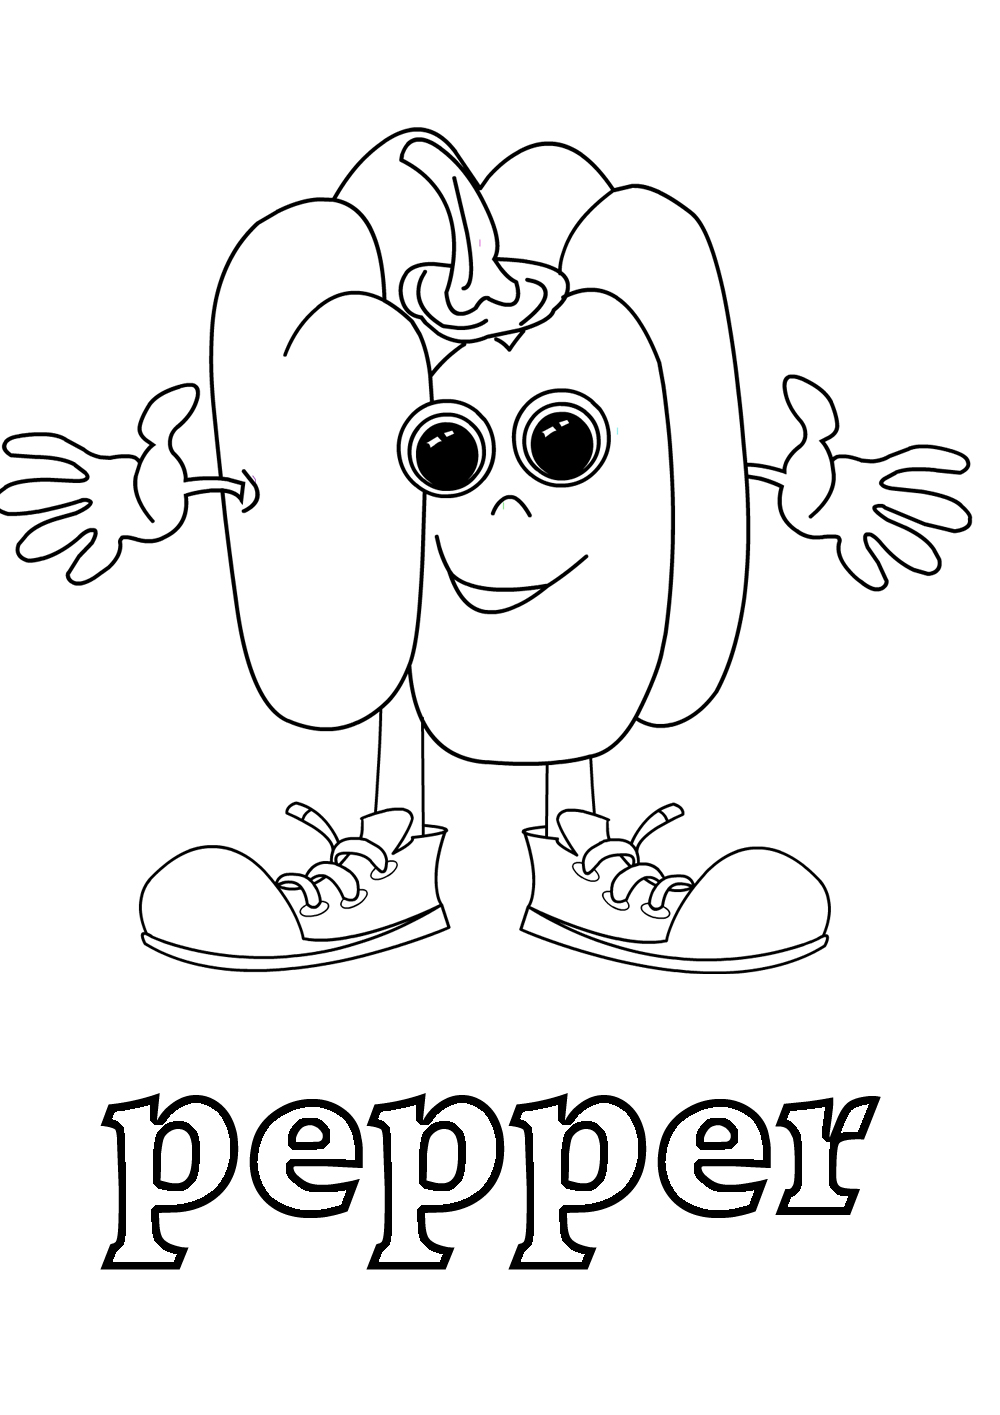 vegetales coloring pages - photo#28